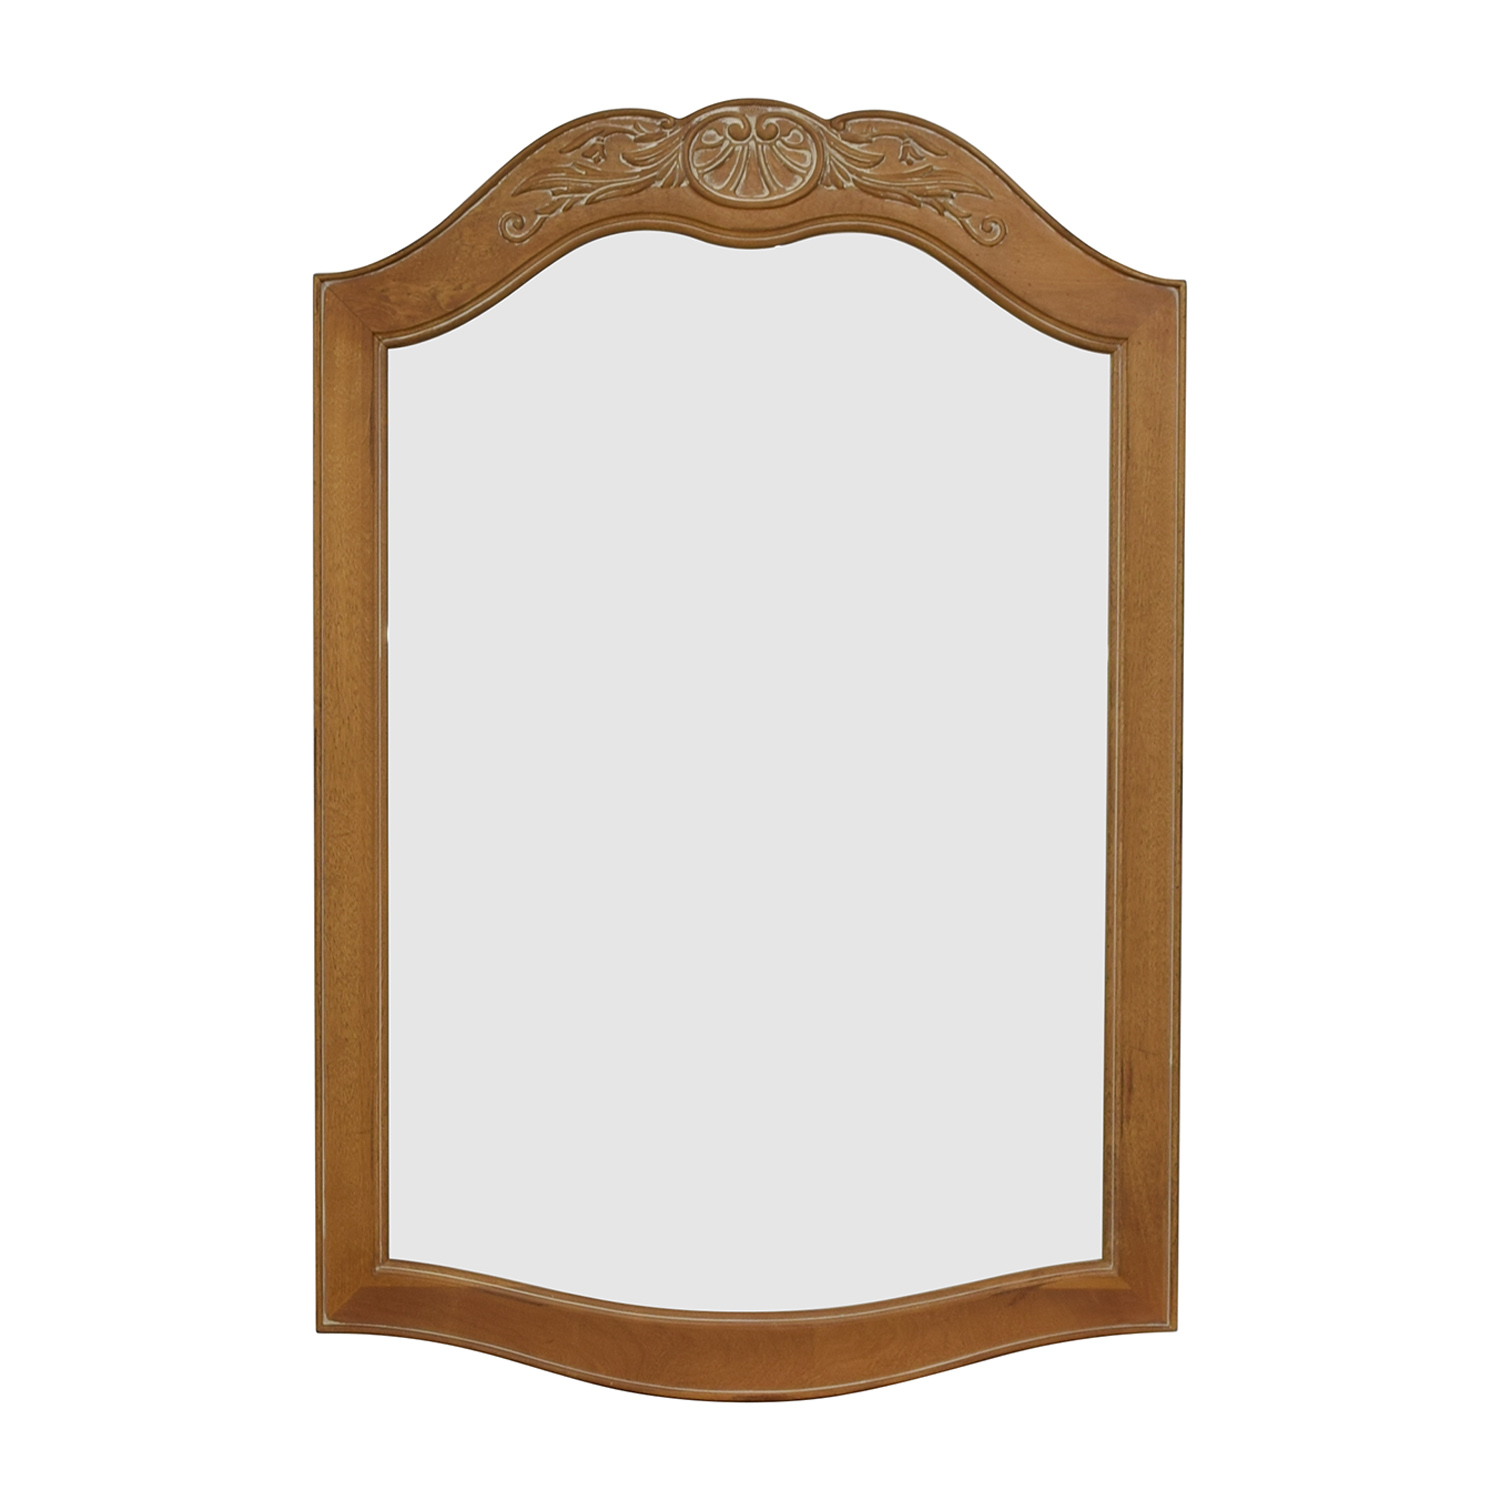 Ethan Allen Ethan Allen Country French Wall Mirror nj